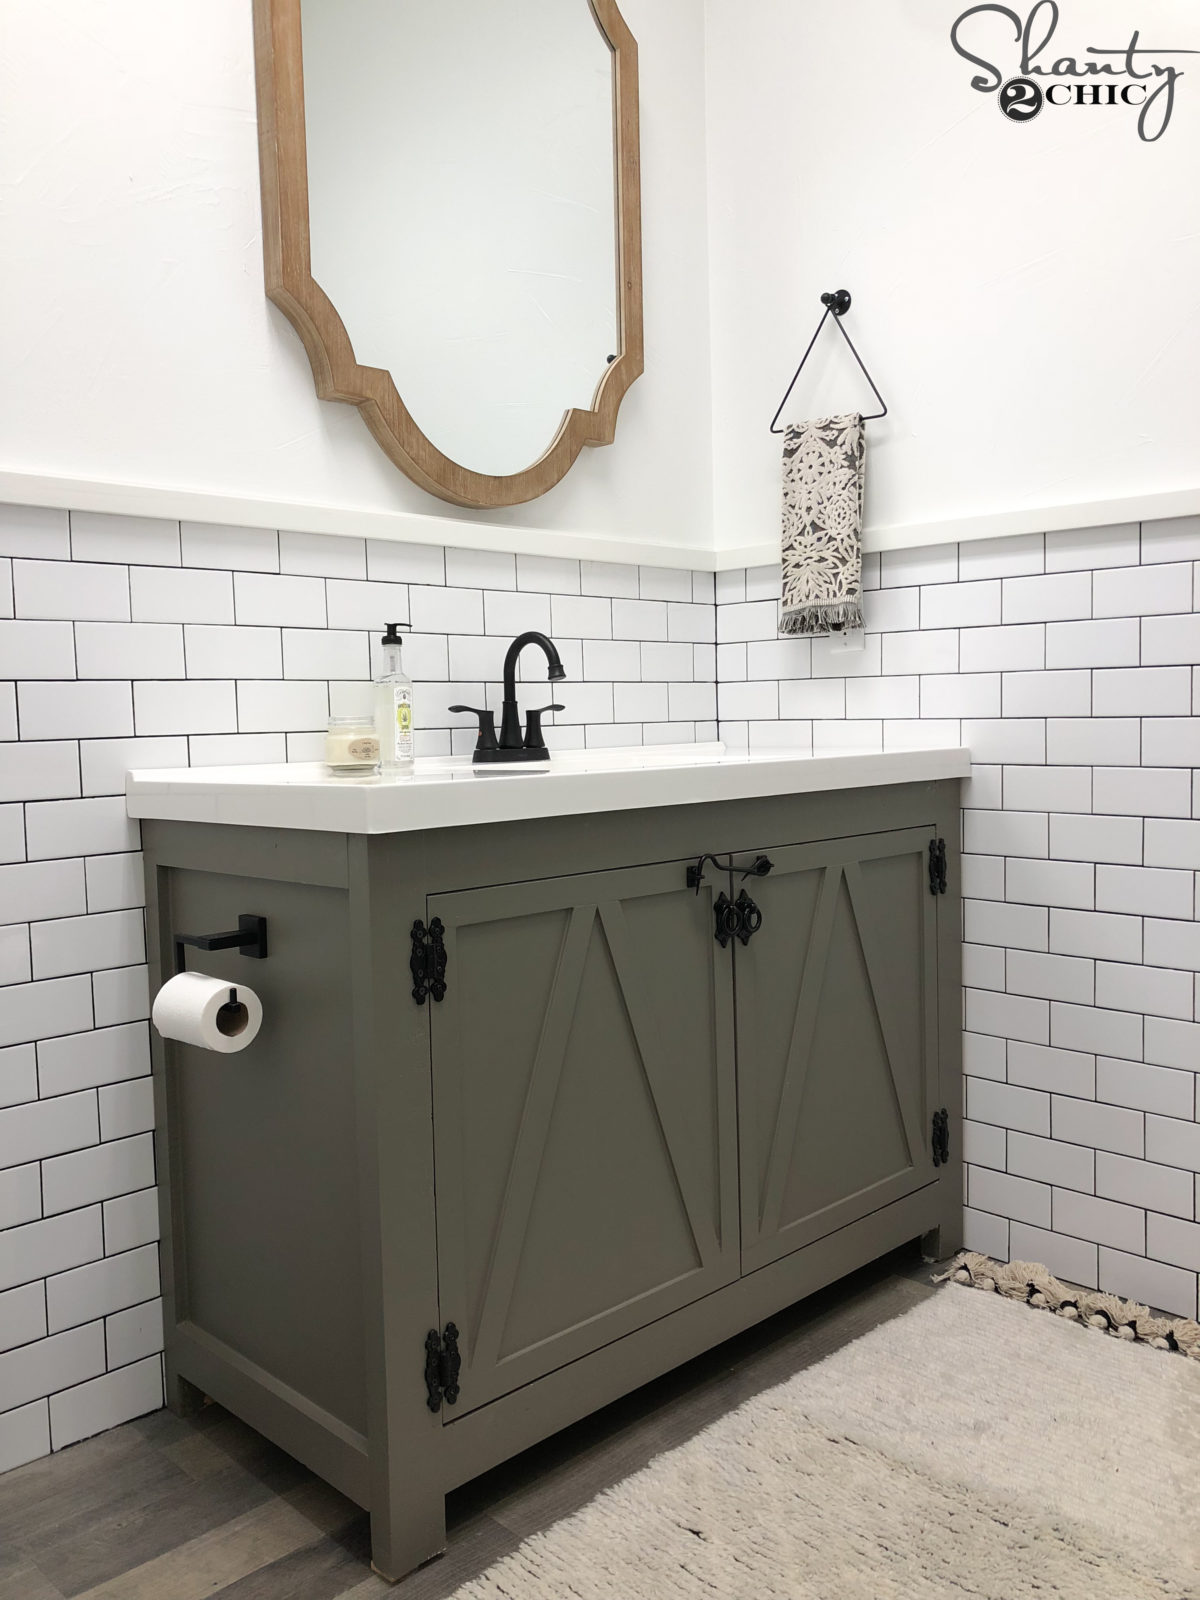 DIY Modern Farmhouse Bathroom Vanity - Shanty 2 Chic